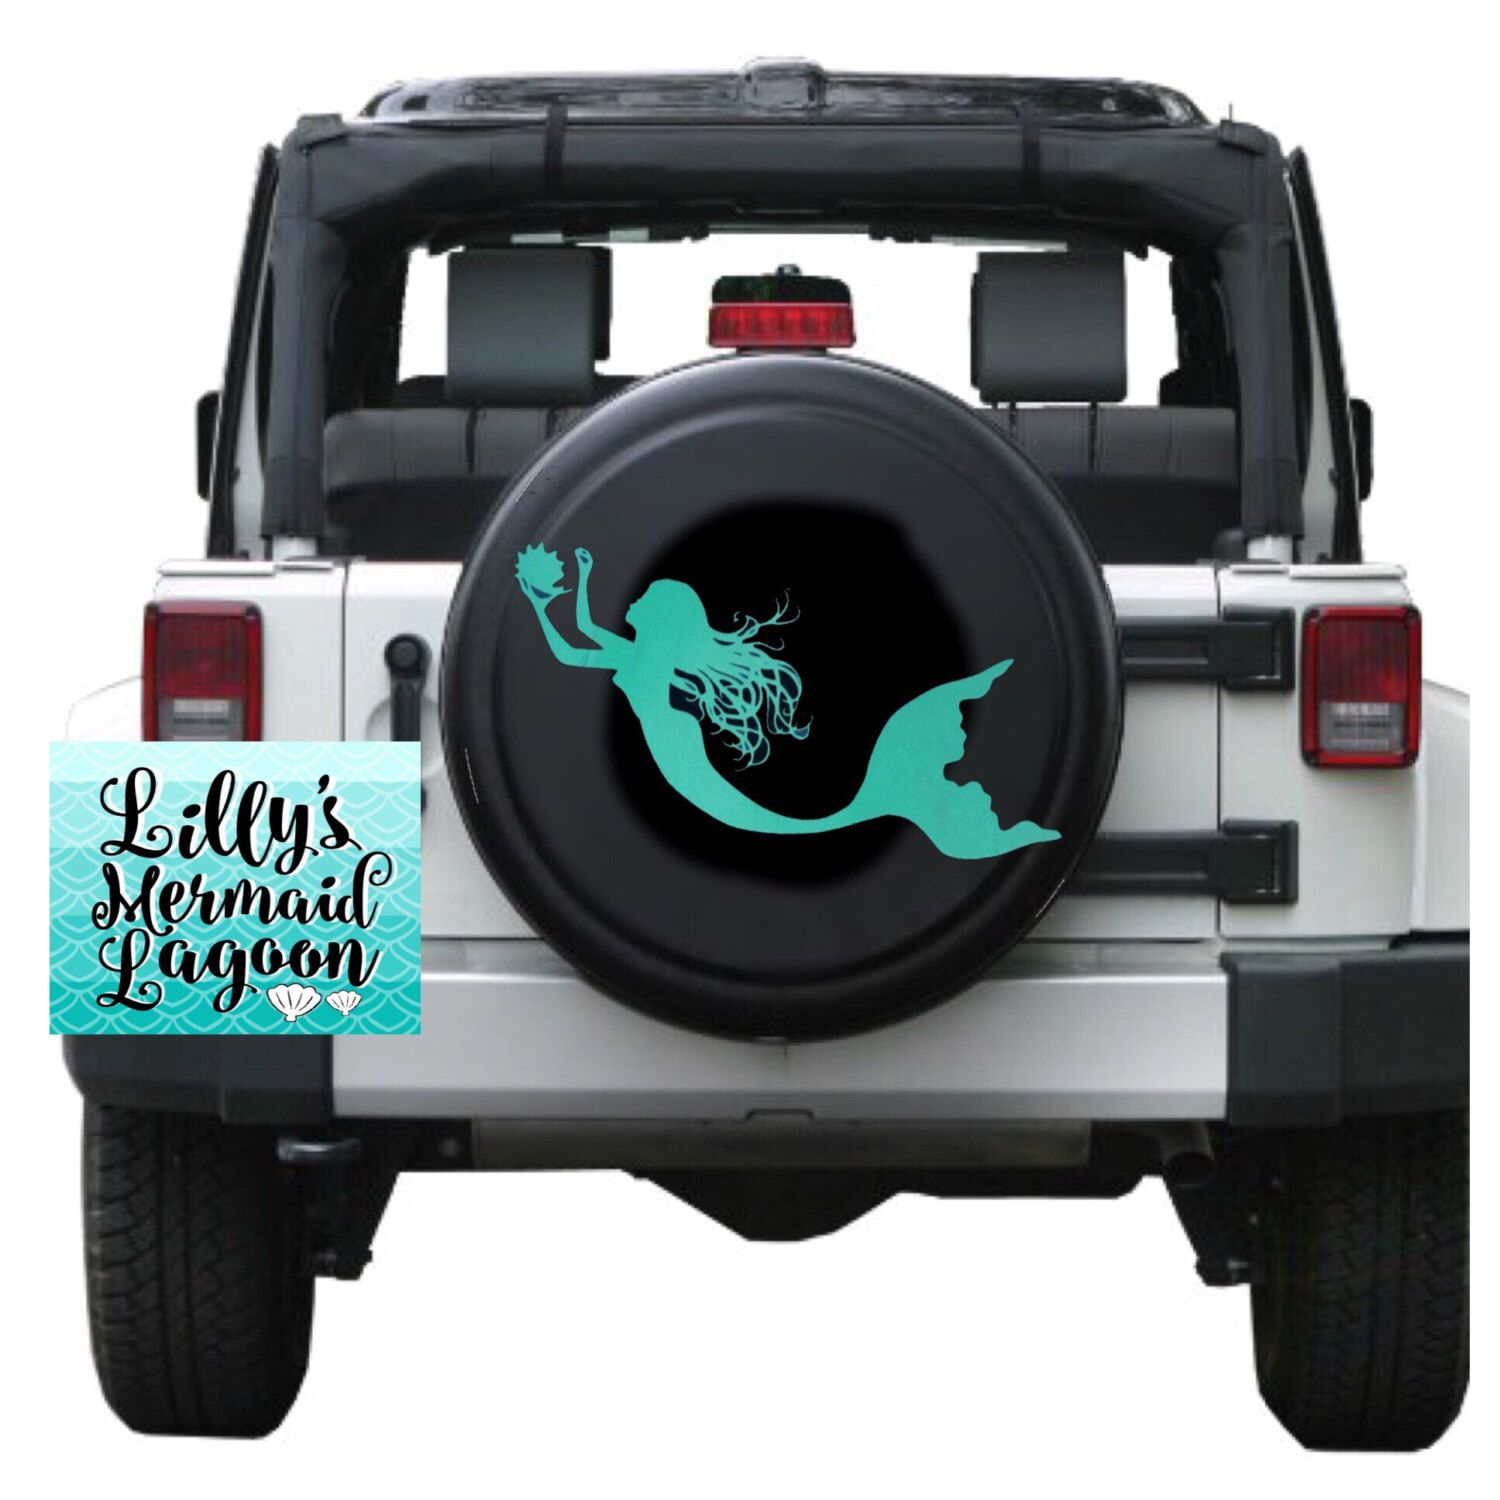 Mermaid Tire Cover Decal Mermaid Decal Tire Cover Mermaid Spare - Custom windo decals for jeepsjeep hood decals and stickers custom and replica jeep decals now